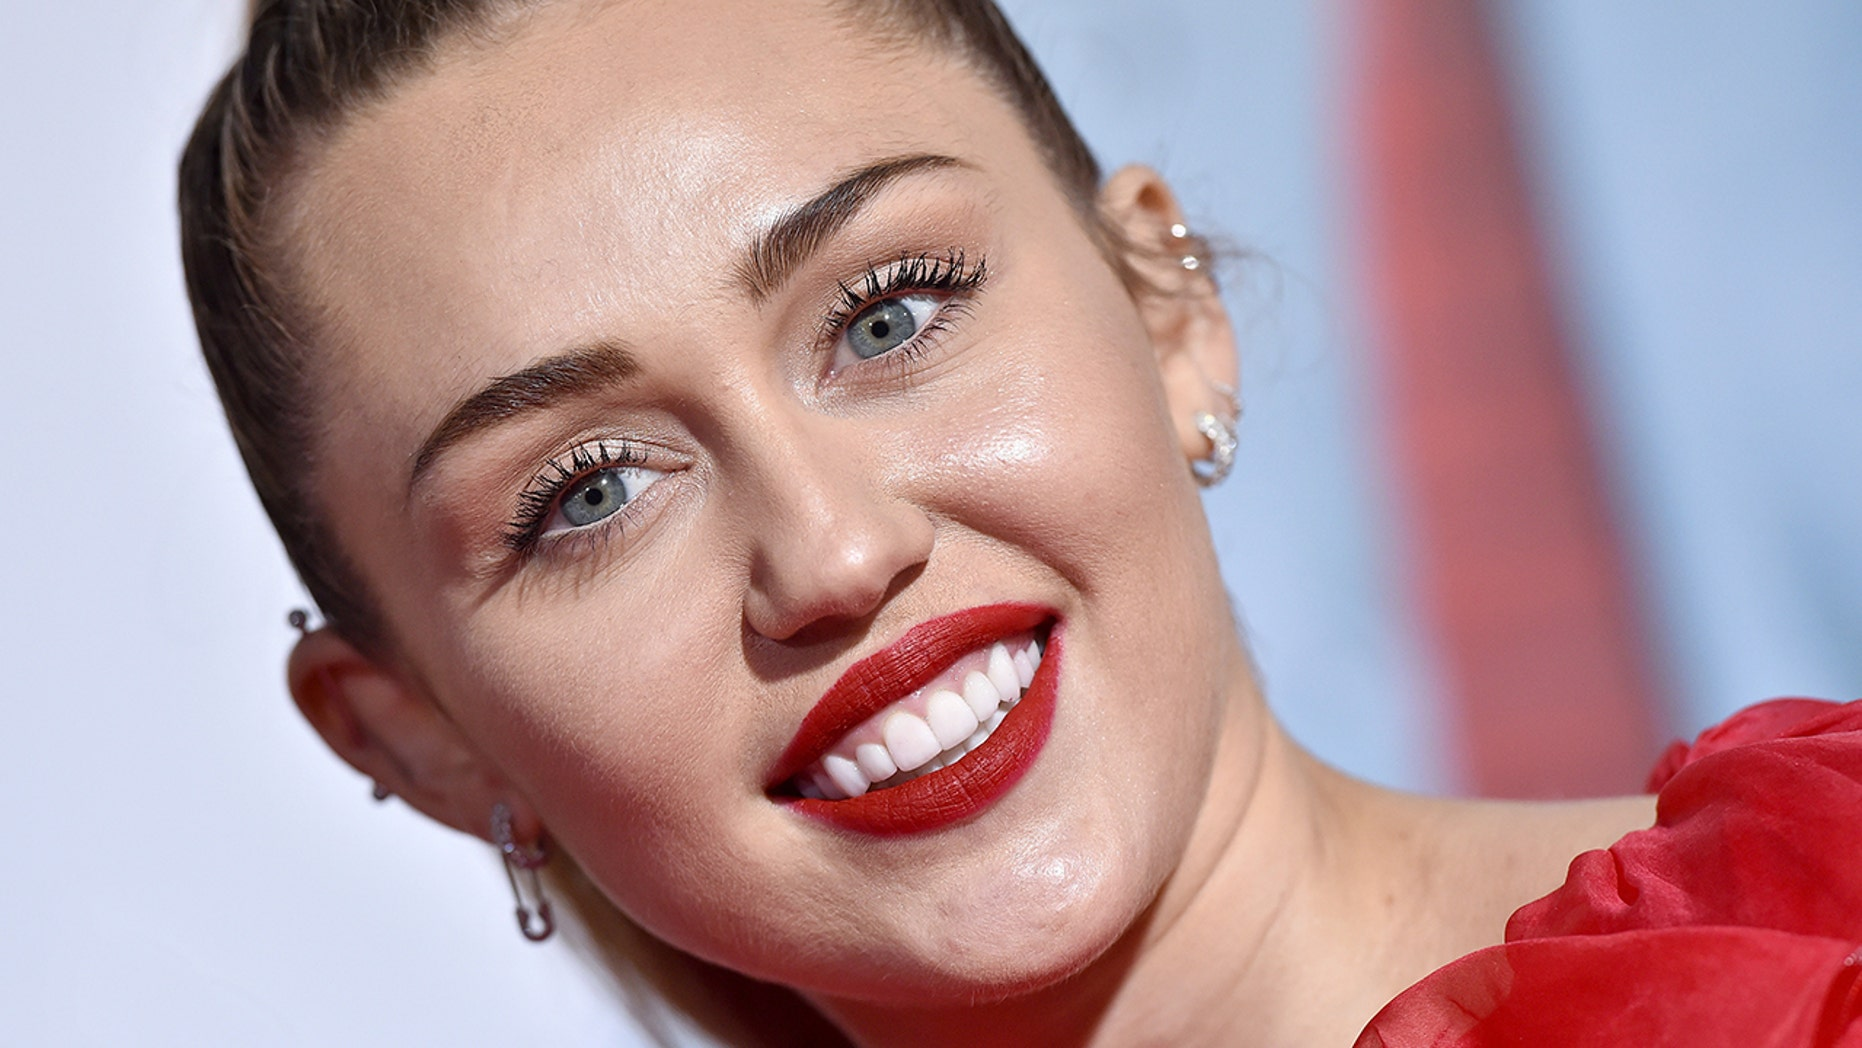 Miley Cyrus Shares New Wedding Pics & Shows Love for Liam Hemsworth